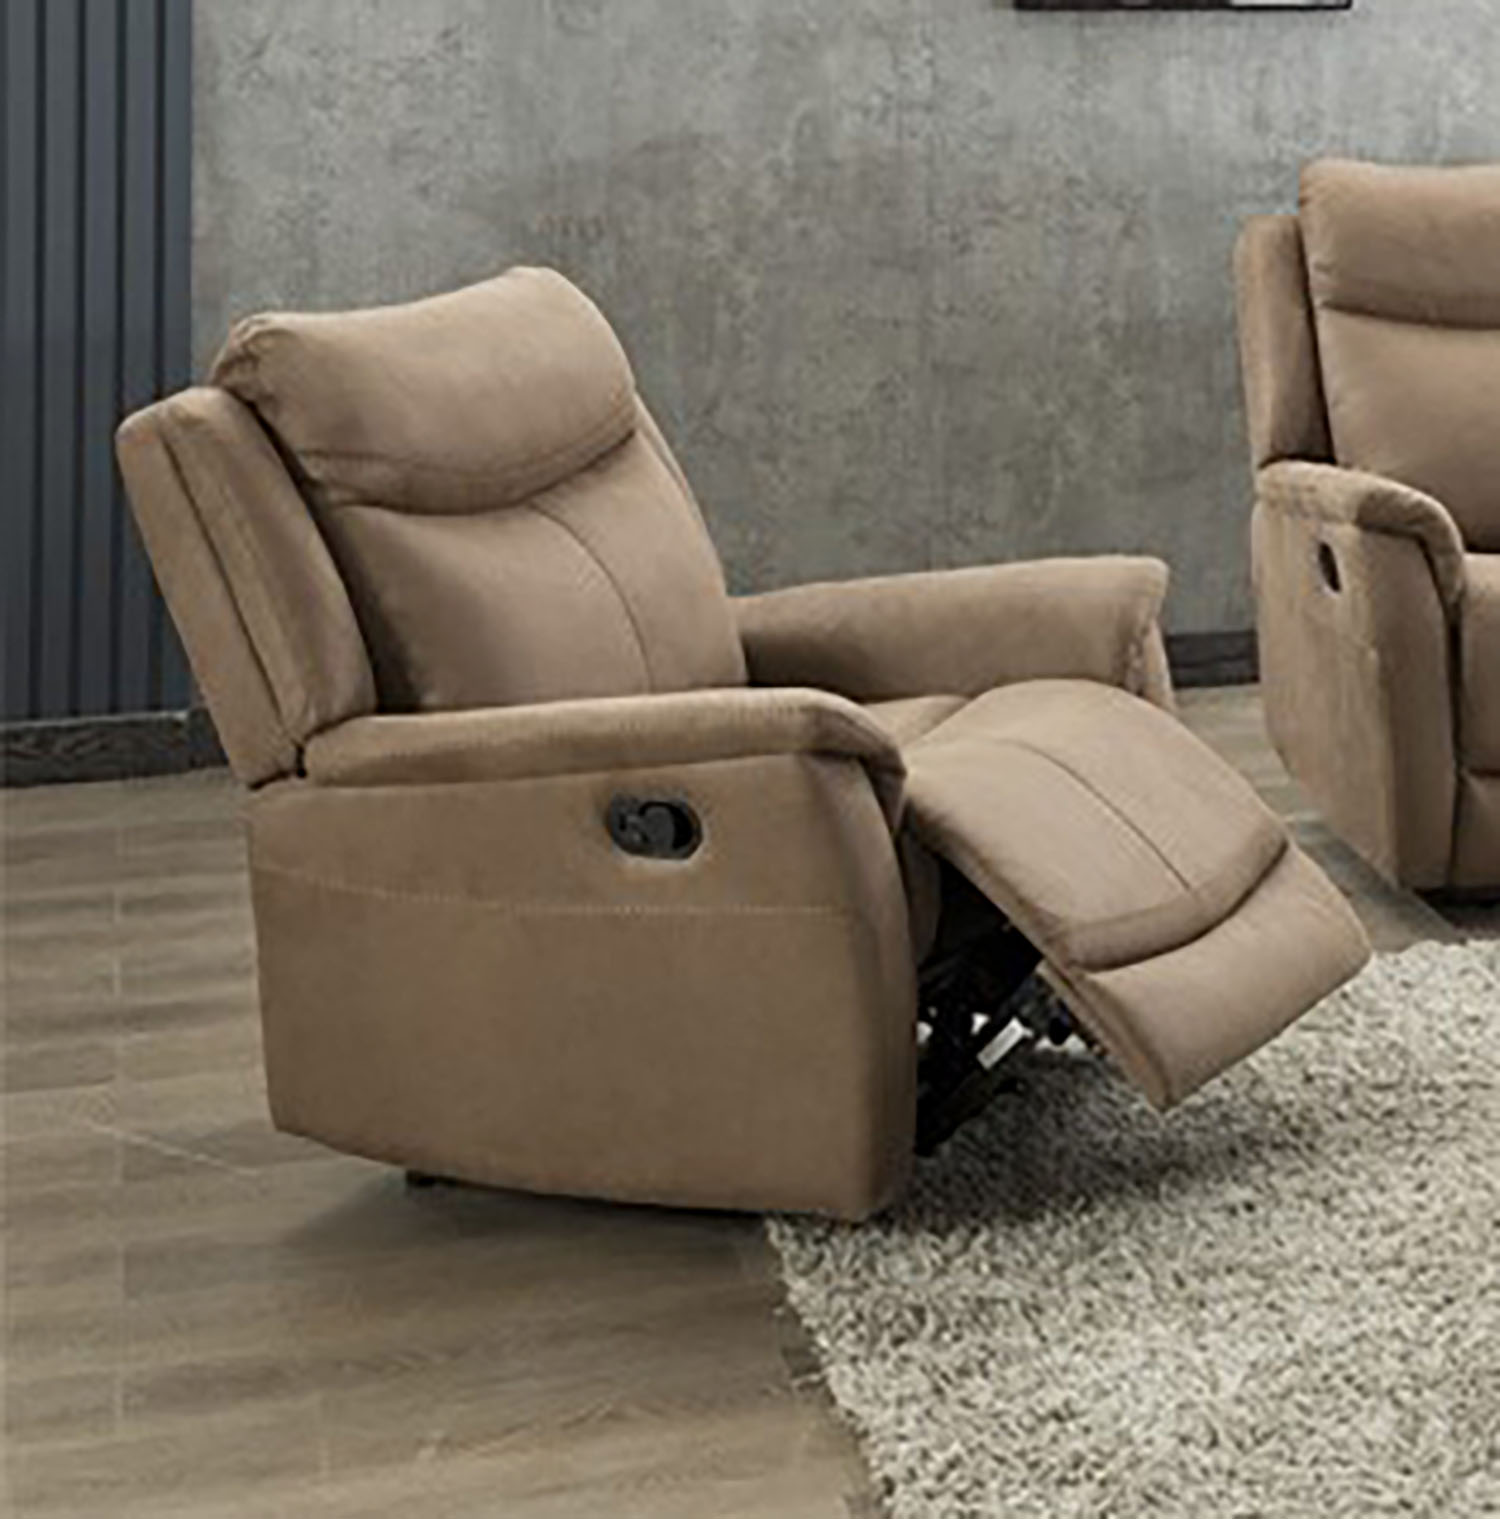 Ancona Manual Recliner - Caramel